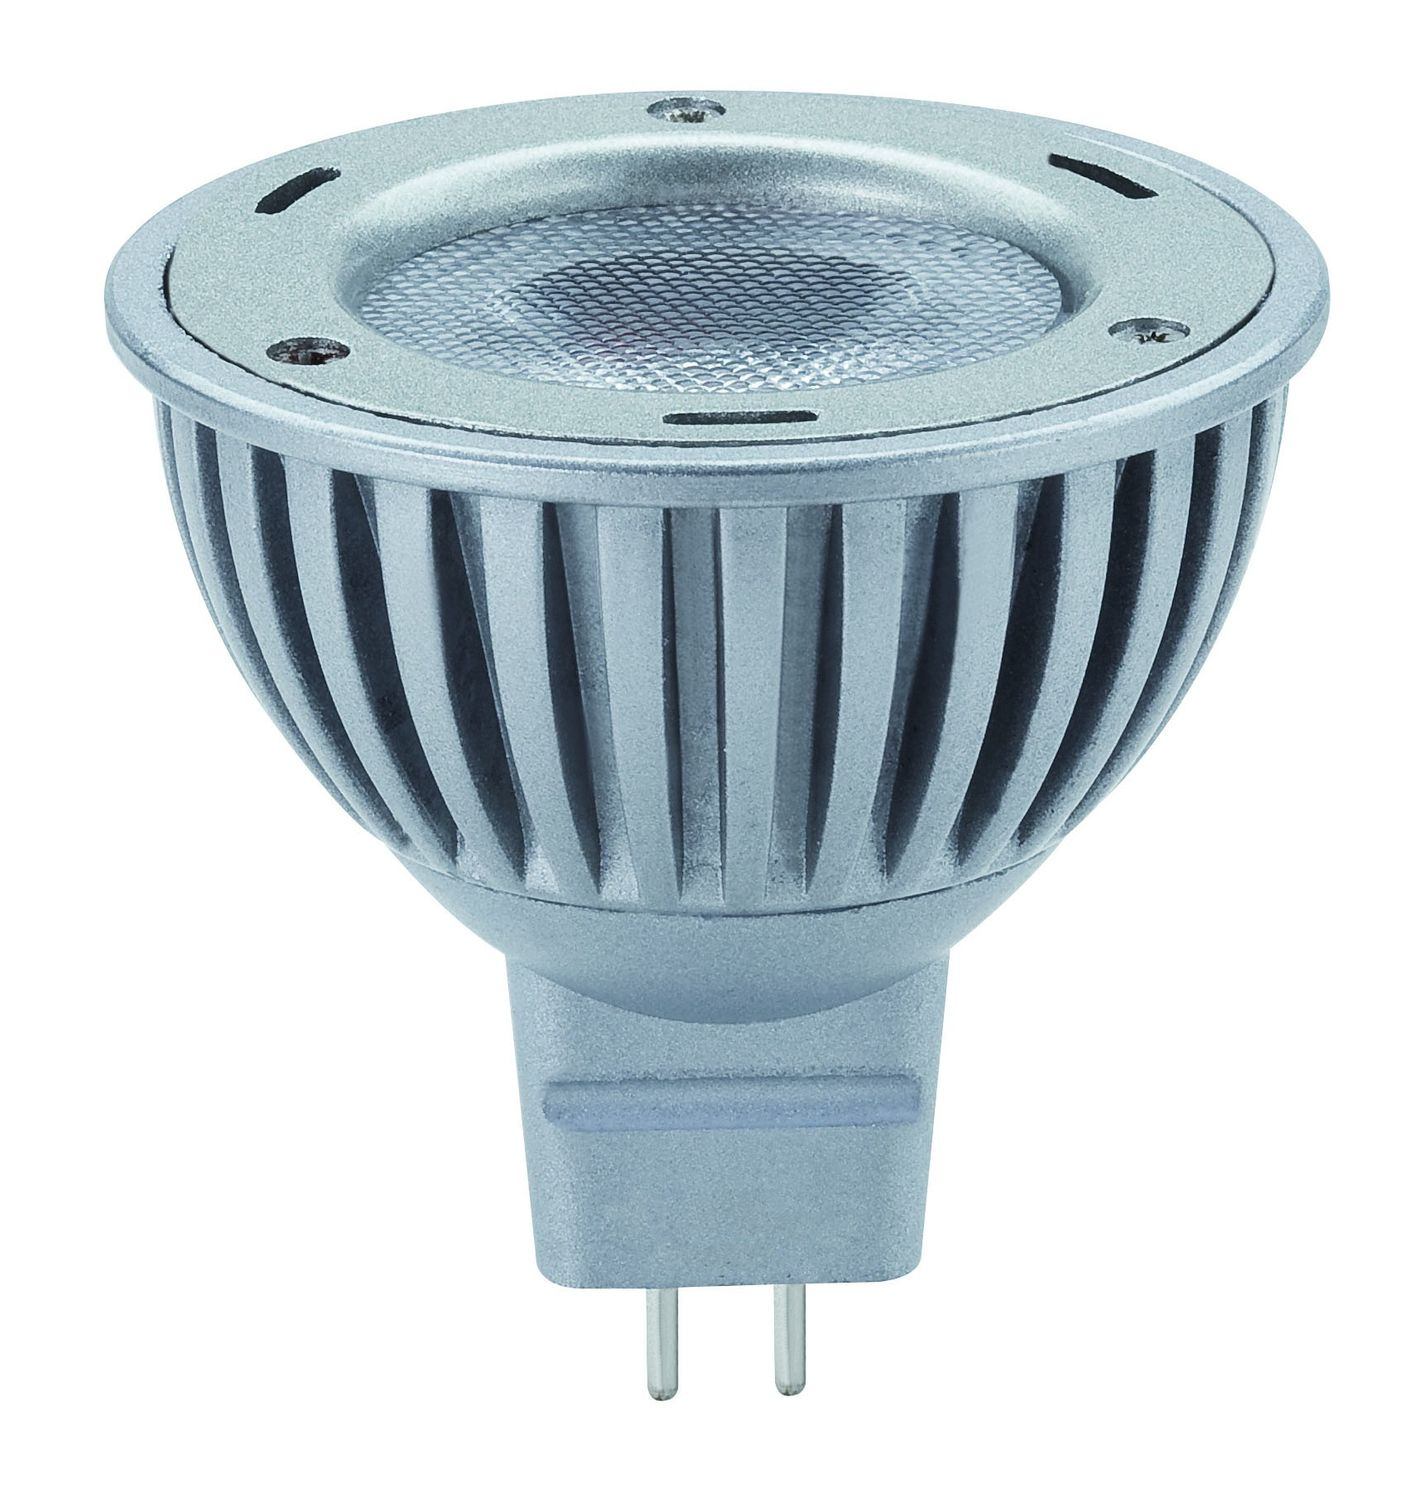 108847-28051-280-51-Paulmann-12V-Fassung-LED-Power Stilvolle sockel Gu5 3 Dekorationen